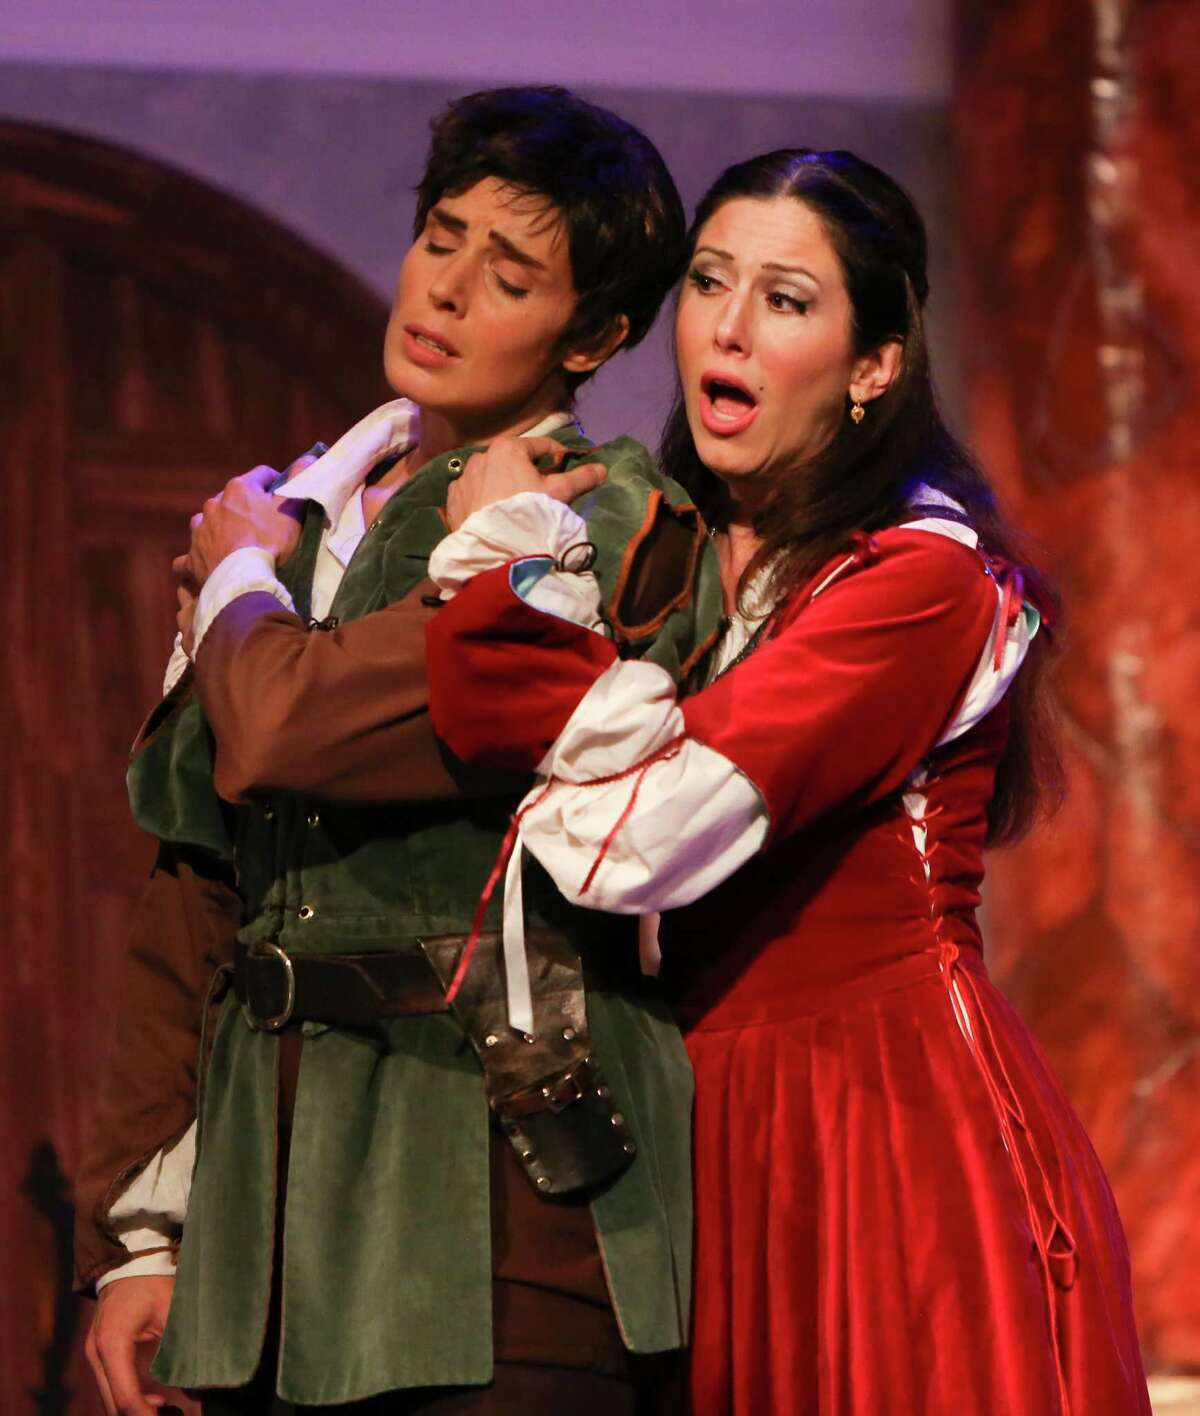 """Sarah Heltzel and Camille Zamora as Romeo and Juliet in Opera in the Heights' production of """"I Capuleti e i Montecchi"""" (The Capulets and the Montagues) photo by Kinjo Yonemoto"""